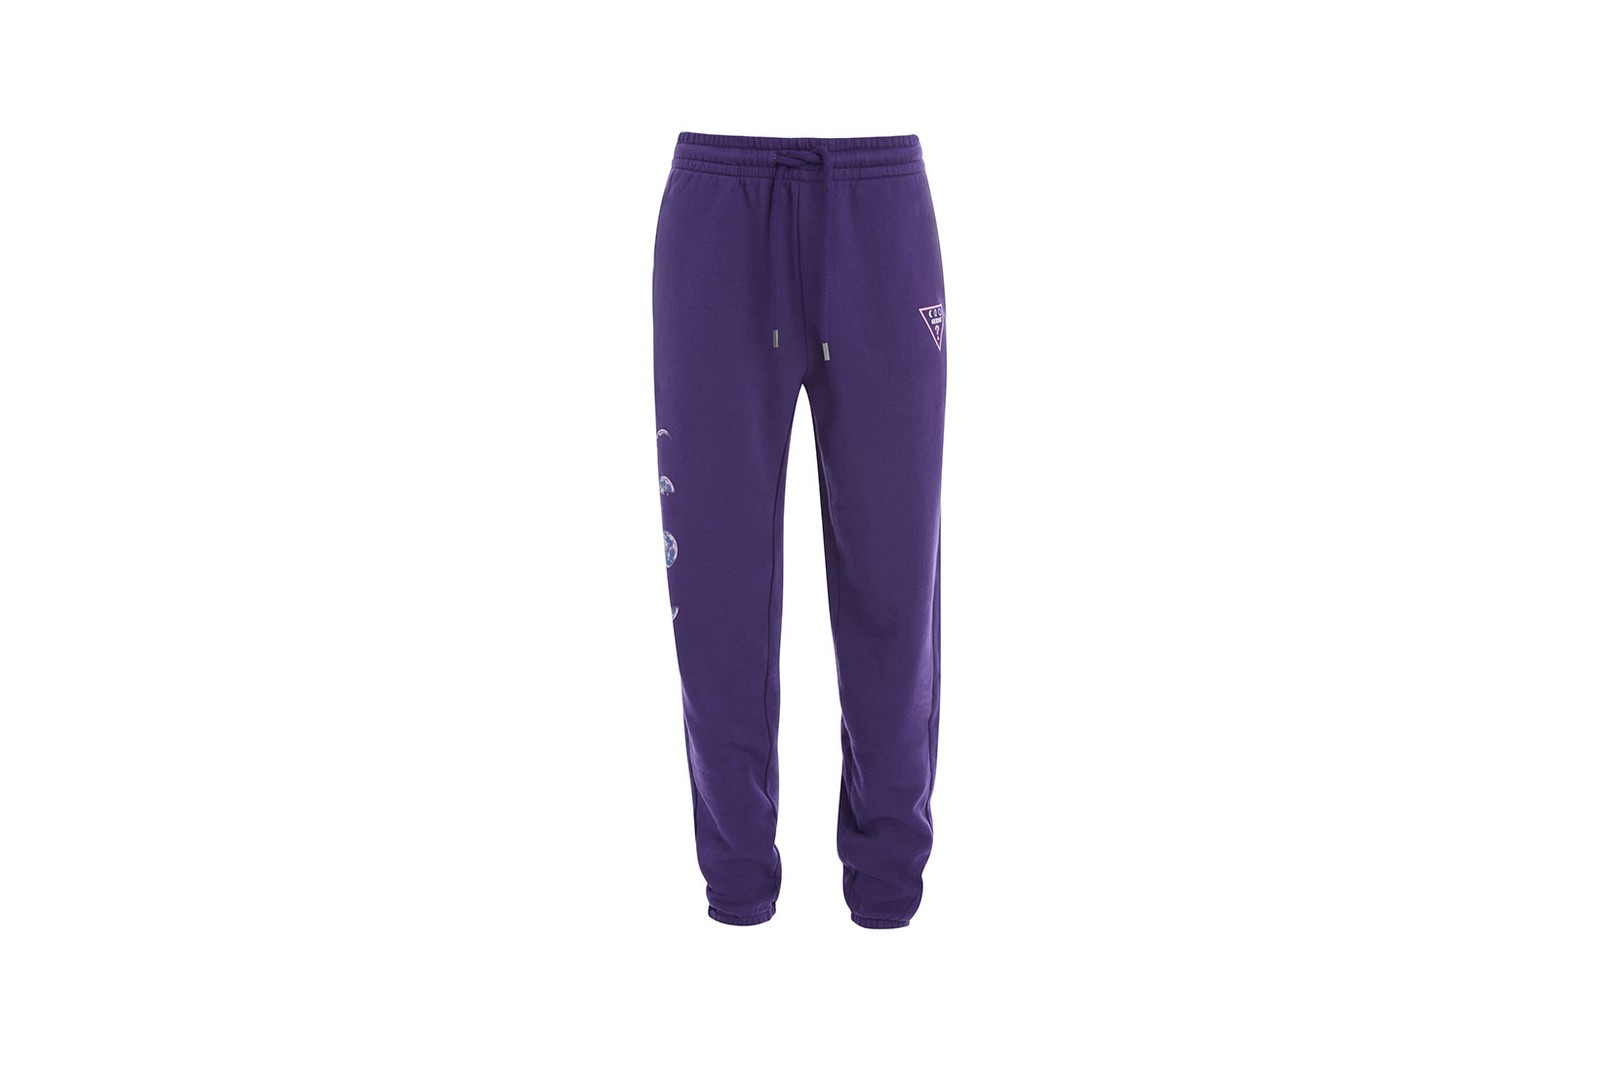 guess originals niki 88rising collaboration moonchild collection hoodie sweatpants tank top black purple